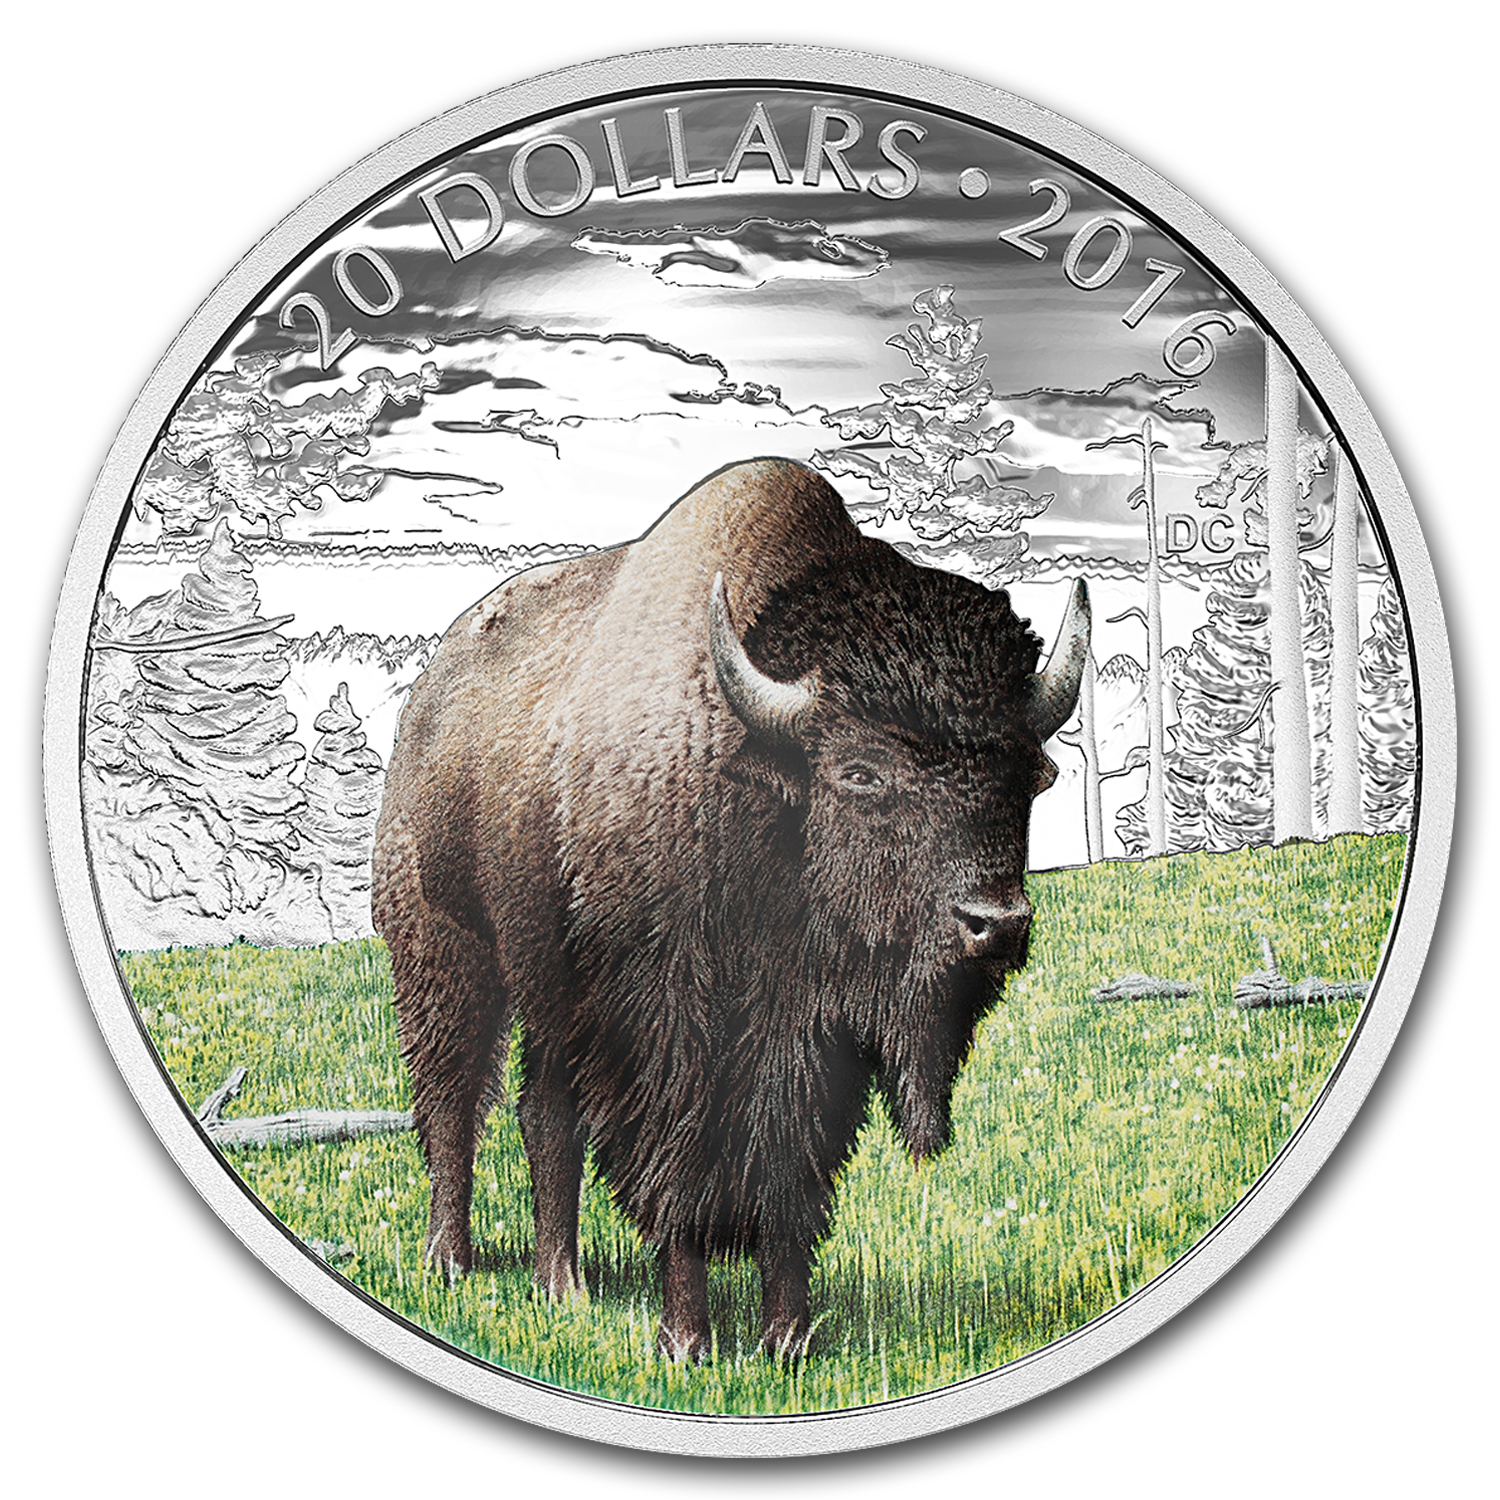 2016 Canada 1 oz Silver $20 Majestic Animals: Benevolent Bison